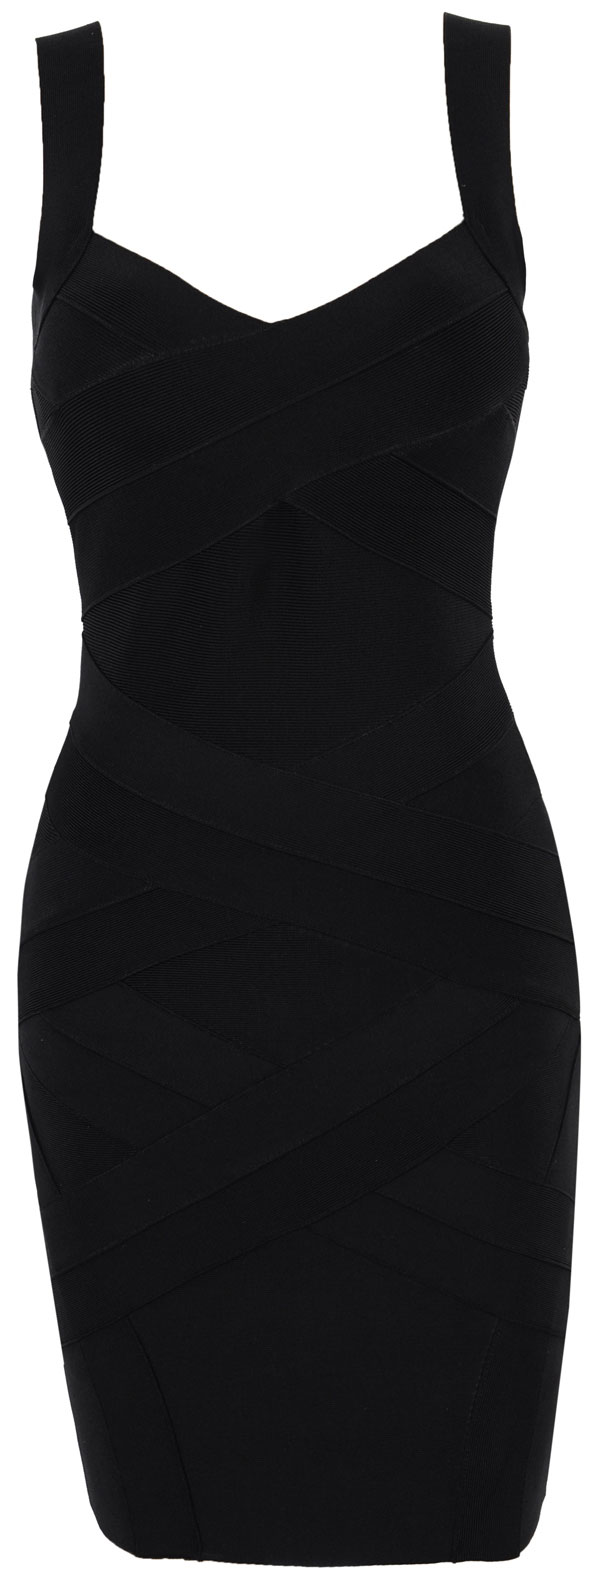 Clothing : Bandage Dresses : &39Jennifer&39 Cross Back Black Bandage Dress